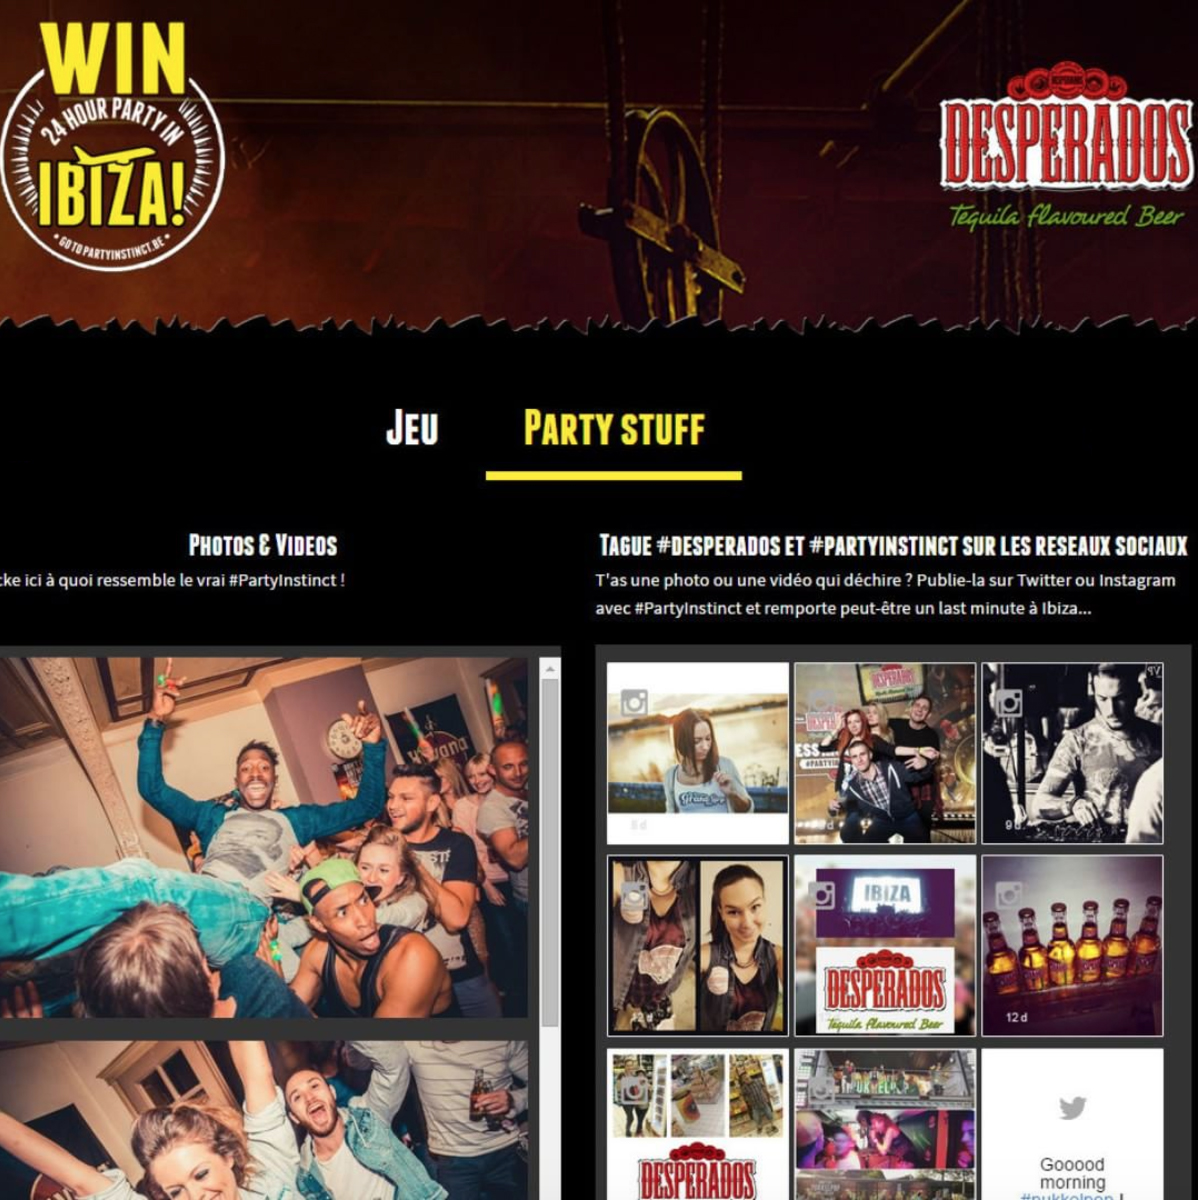 Dialogfeed has made a social wall to highlight the hashtag campaigns of the beer brand Desperados